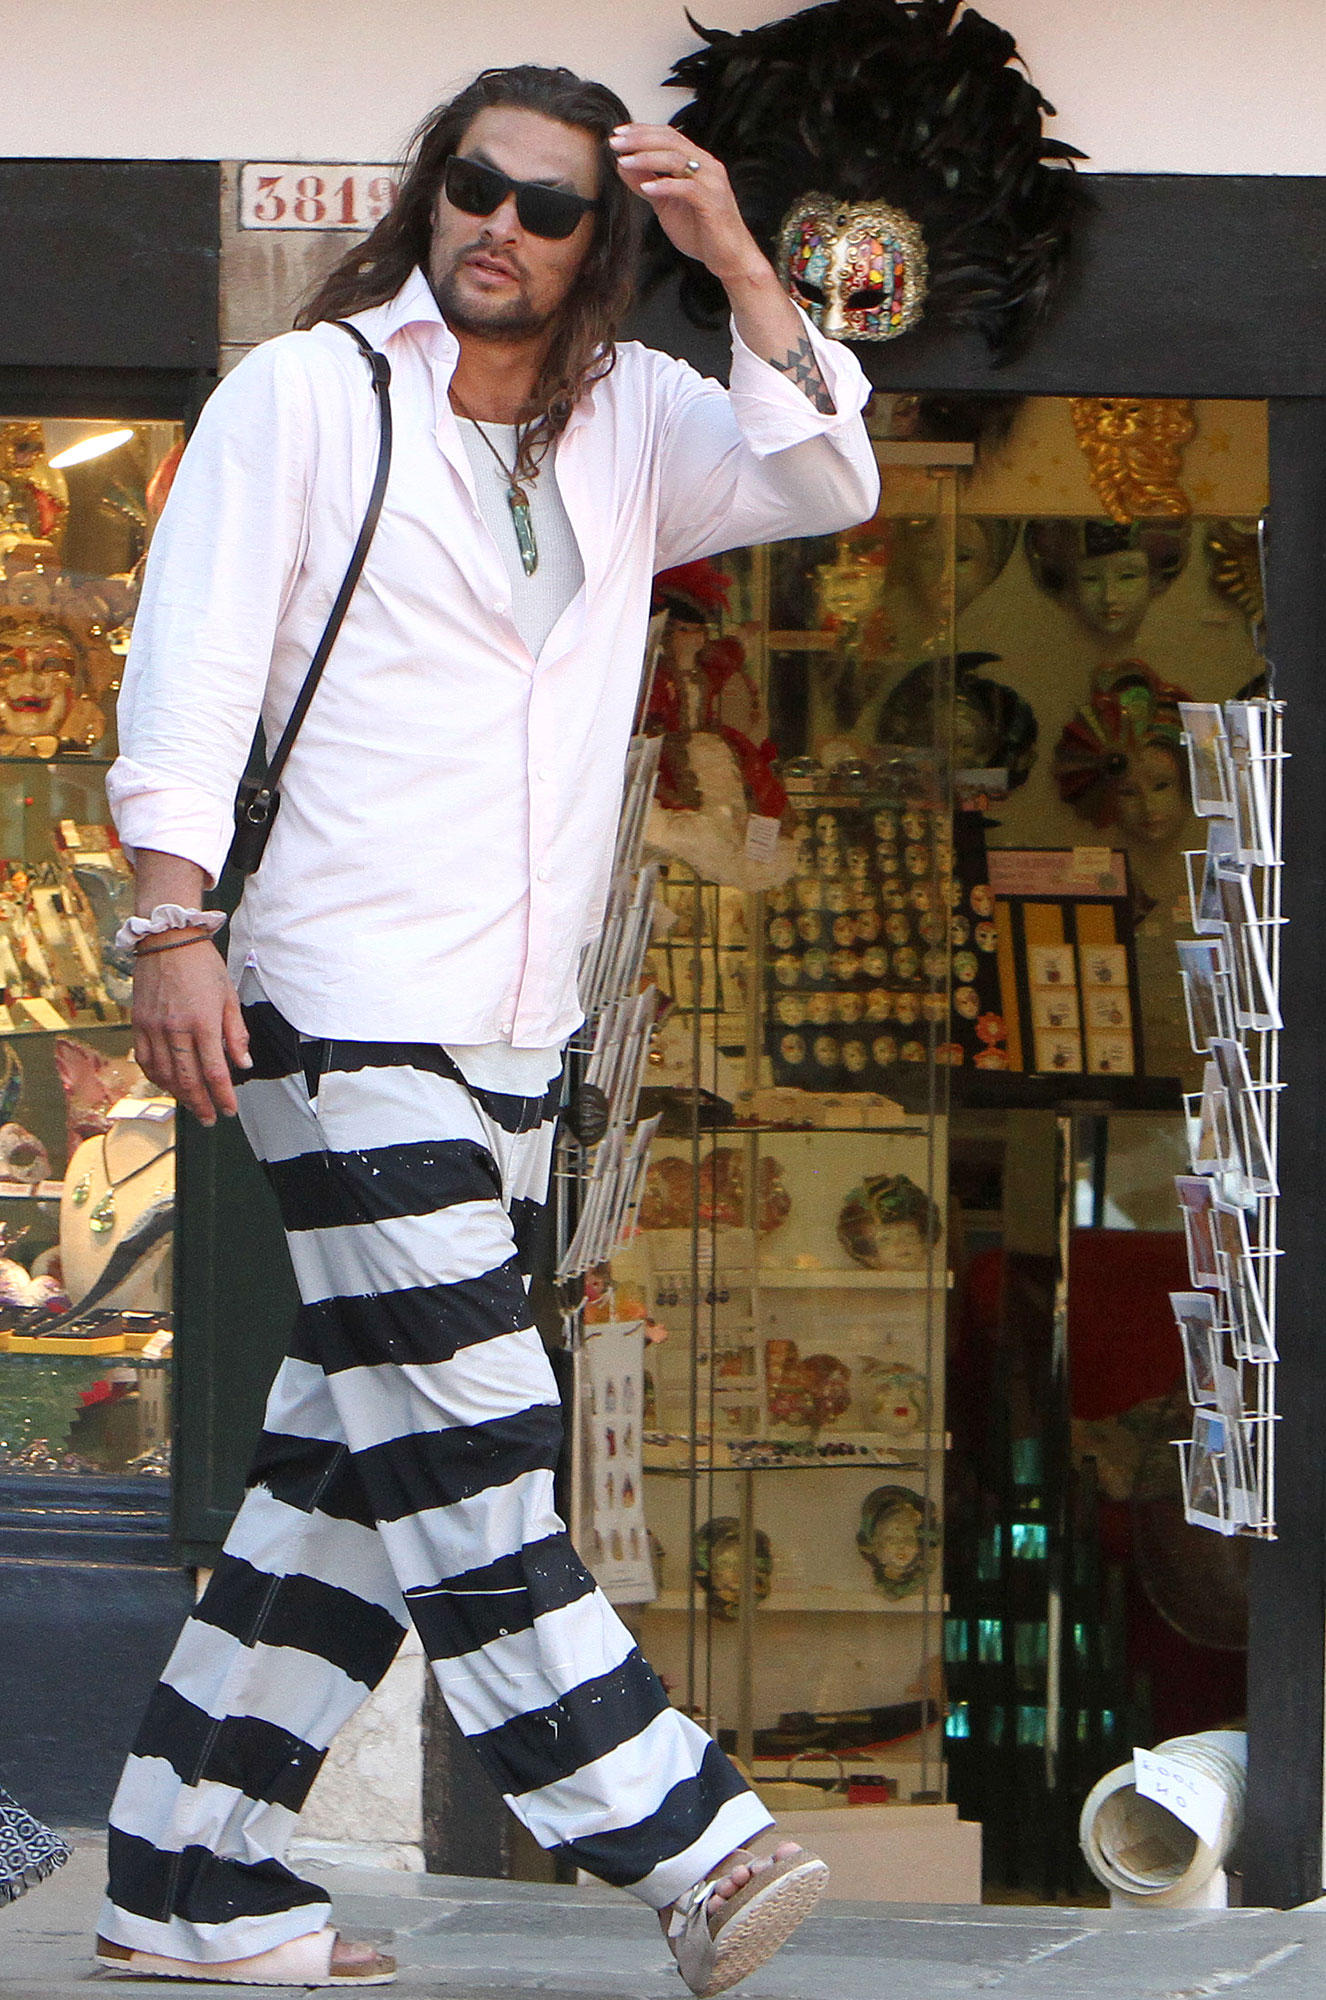 Jason Momoa Explore Italy Black and White Striped Pants and Sandals Sunglasses - Momoa showed off his eclectic style while walking in the Italian city.